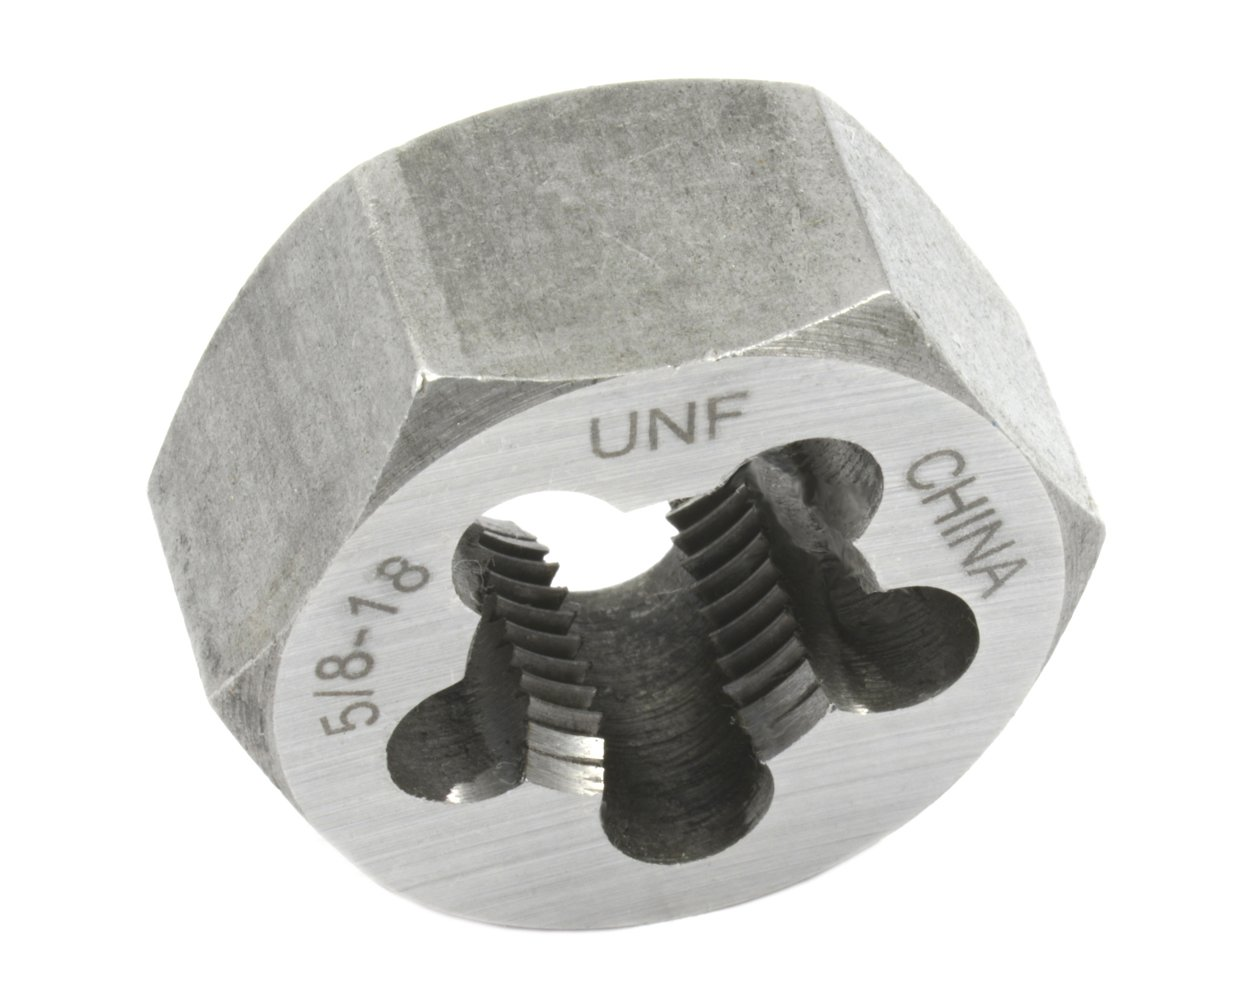 5//8-Inch by 18-Inch Forney 21184 Pipe Die Industrial Pro UNF Hex Re-Threading Carbon Steel Right Hand